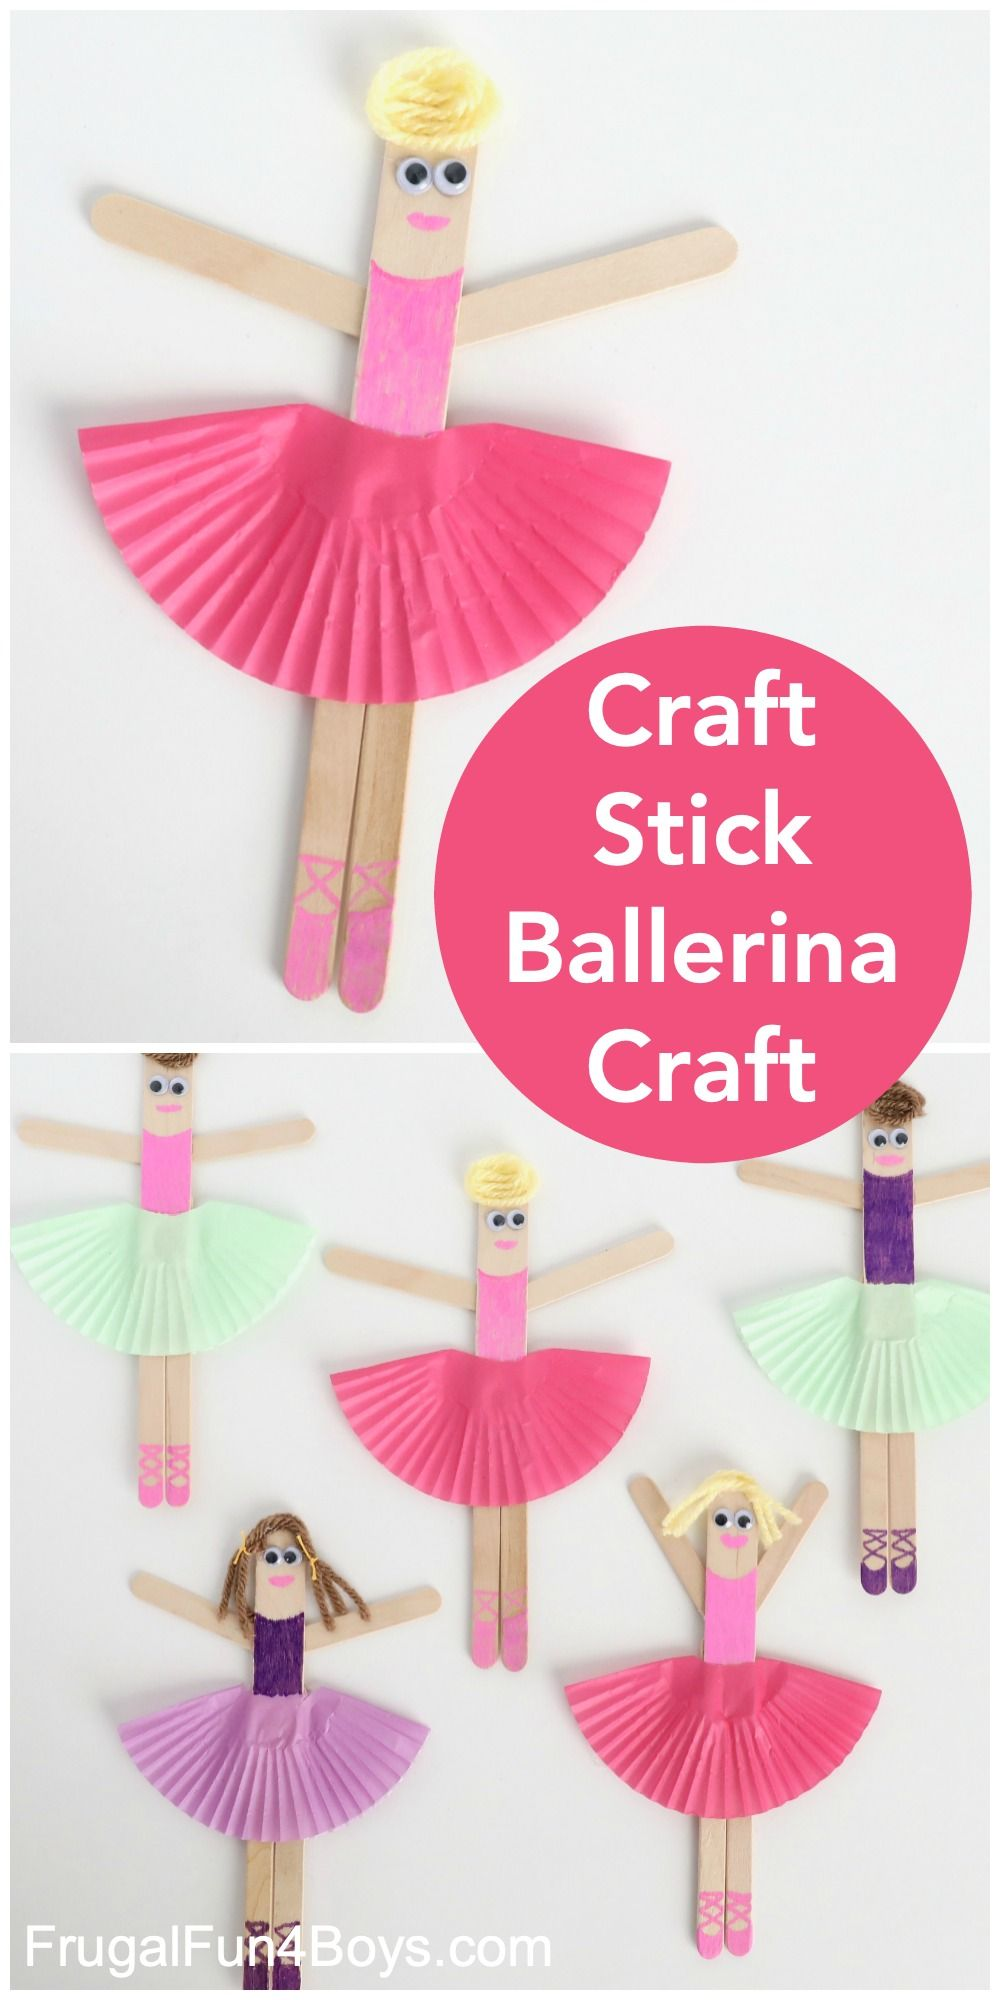 Craft Stick Ballerina Craft - Frugal Fun For Boys and Girls